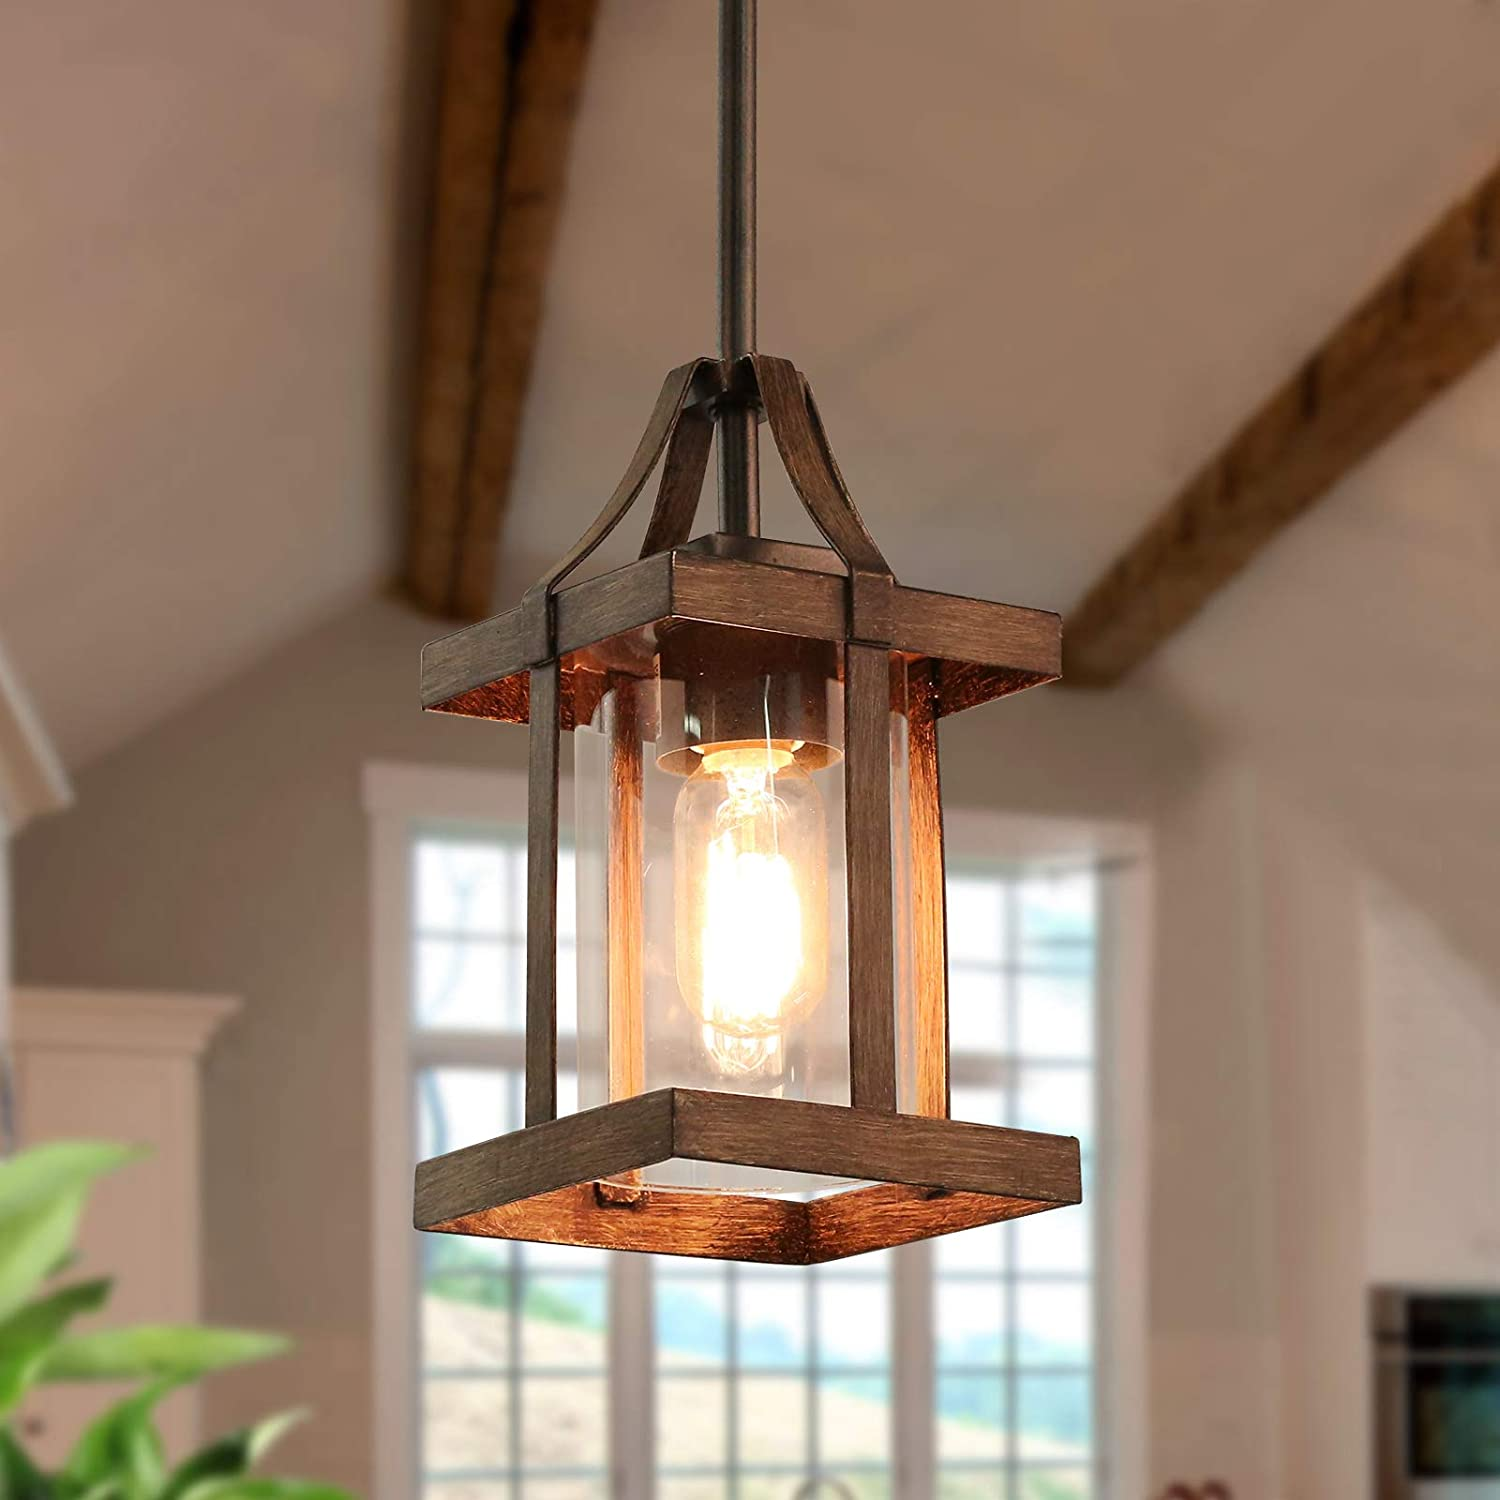 LNC A9 Faux Wood Pendant Lighting Farmhouse Hanging Fixture with Glass  Shades for Kitchen Island, Bedroom, Dining Room, Hallway and Foyer, A9,  ...